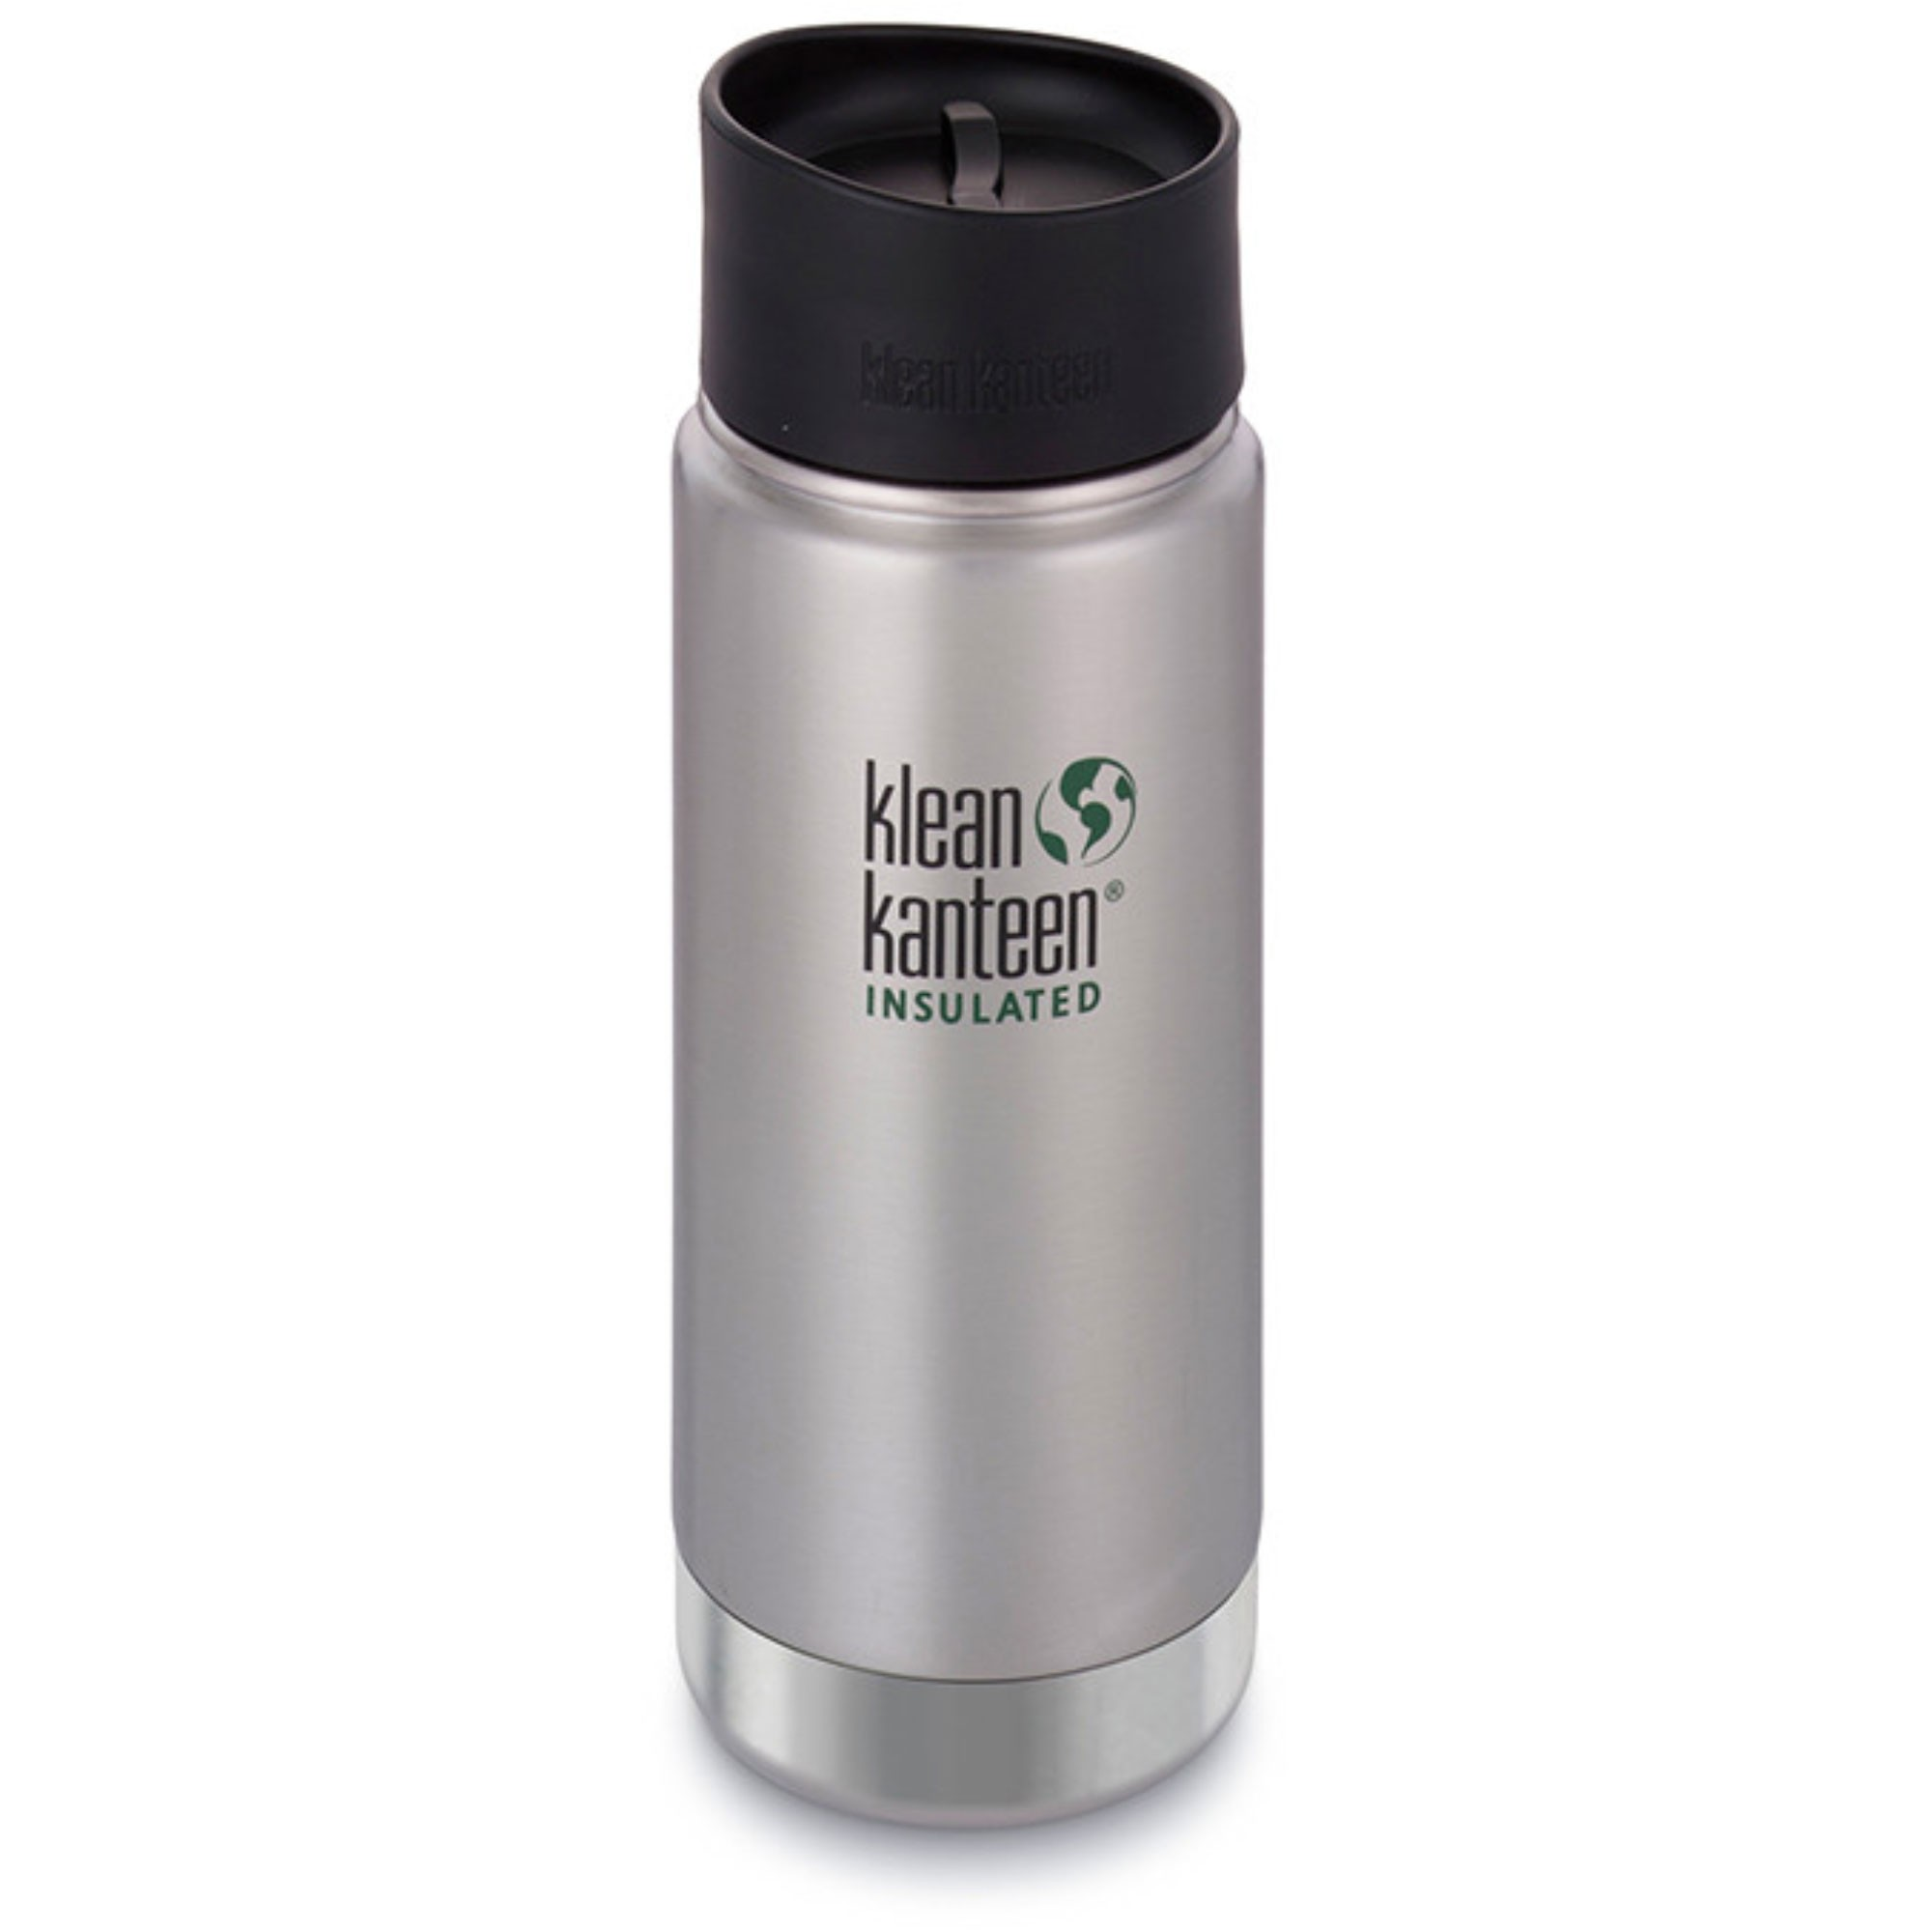 KLEAN KANTEEN - Insulated Cafe Cap Flask - 473ml - Stainless Steel